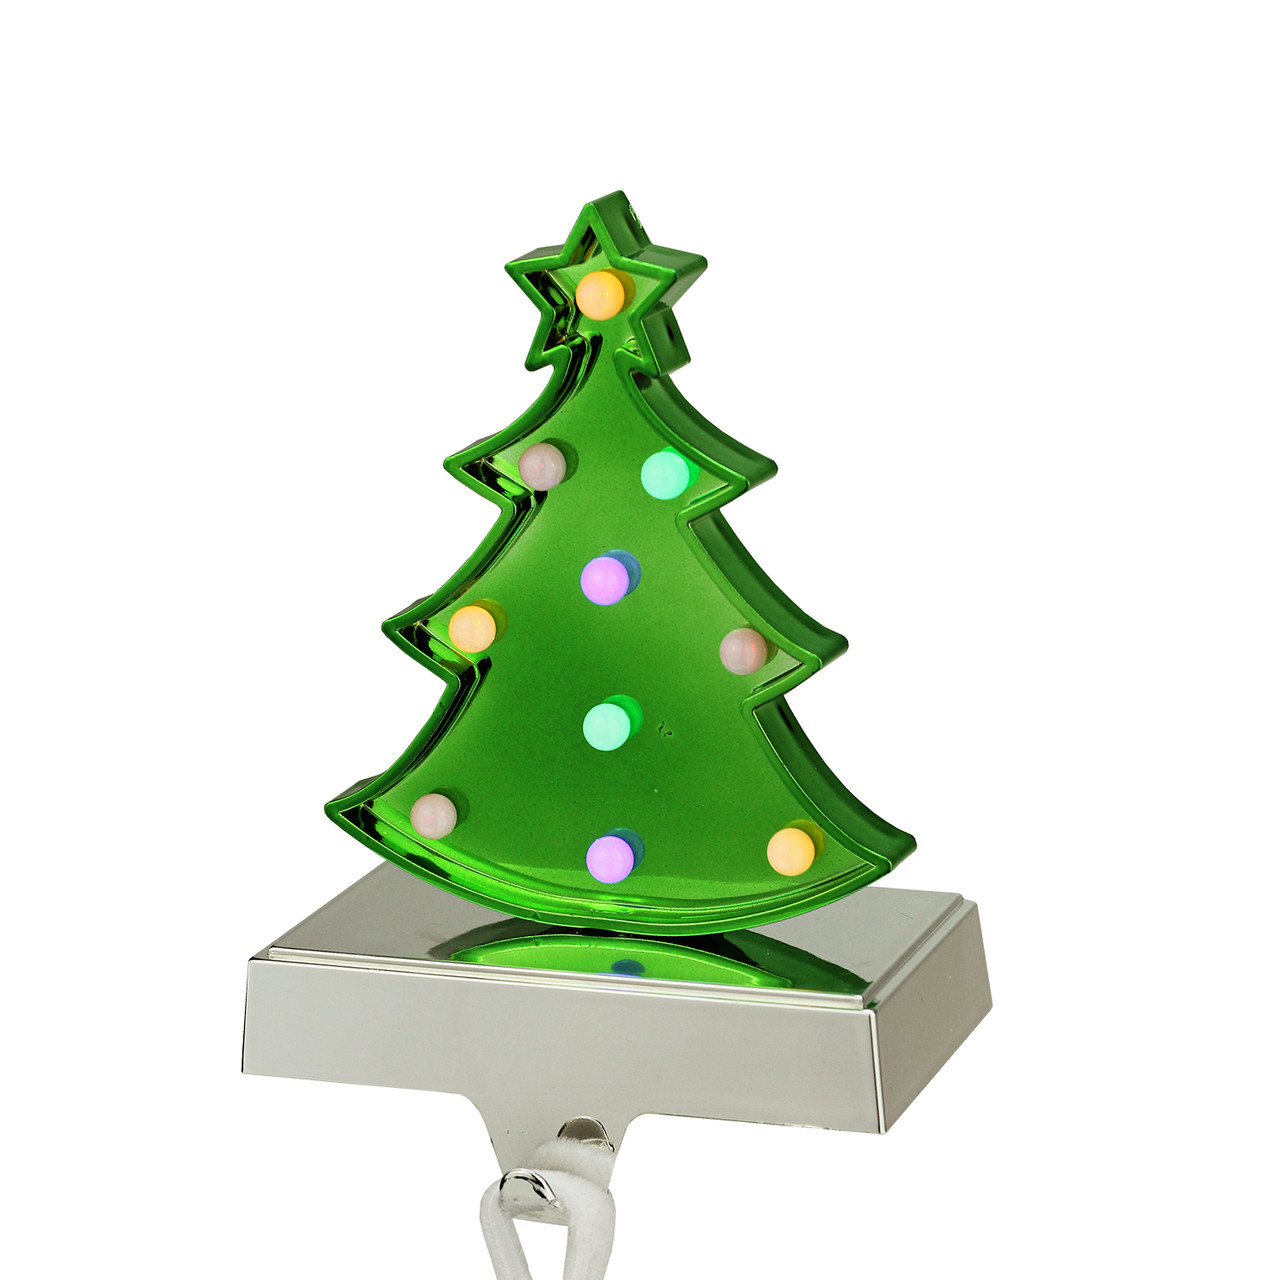 725 battery operated led multi color lighted green christmas tree stocking holder 32269894 - Battery Operated Christmas Trees